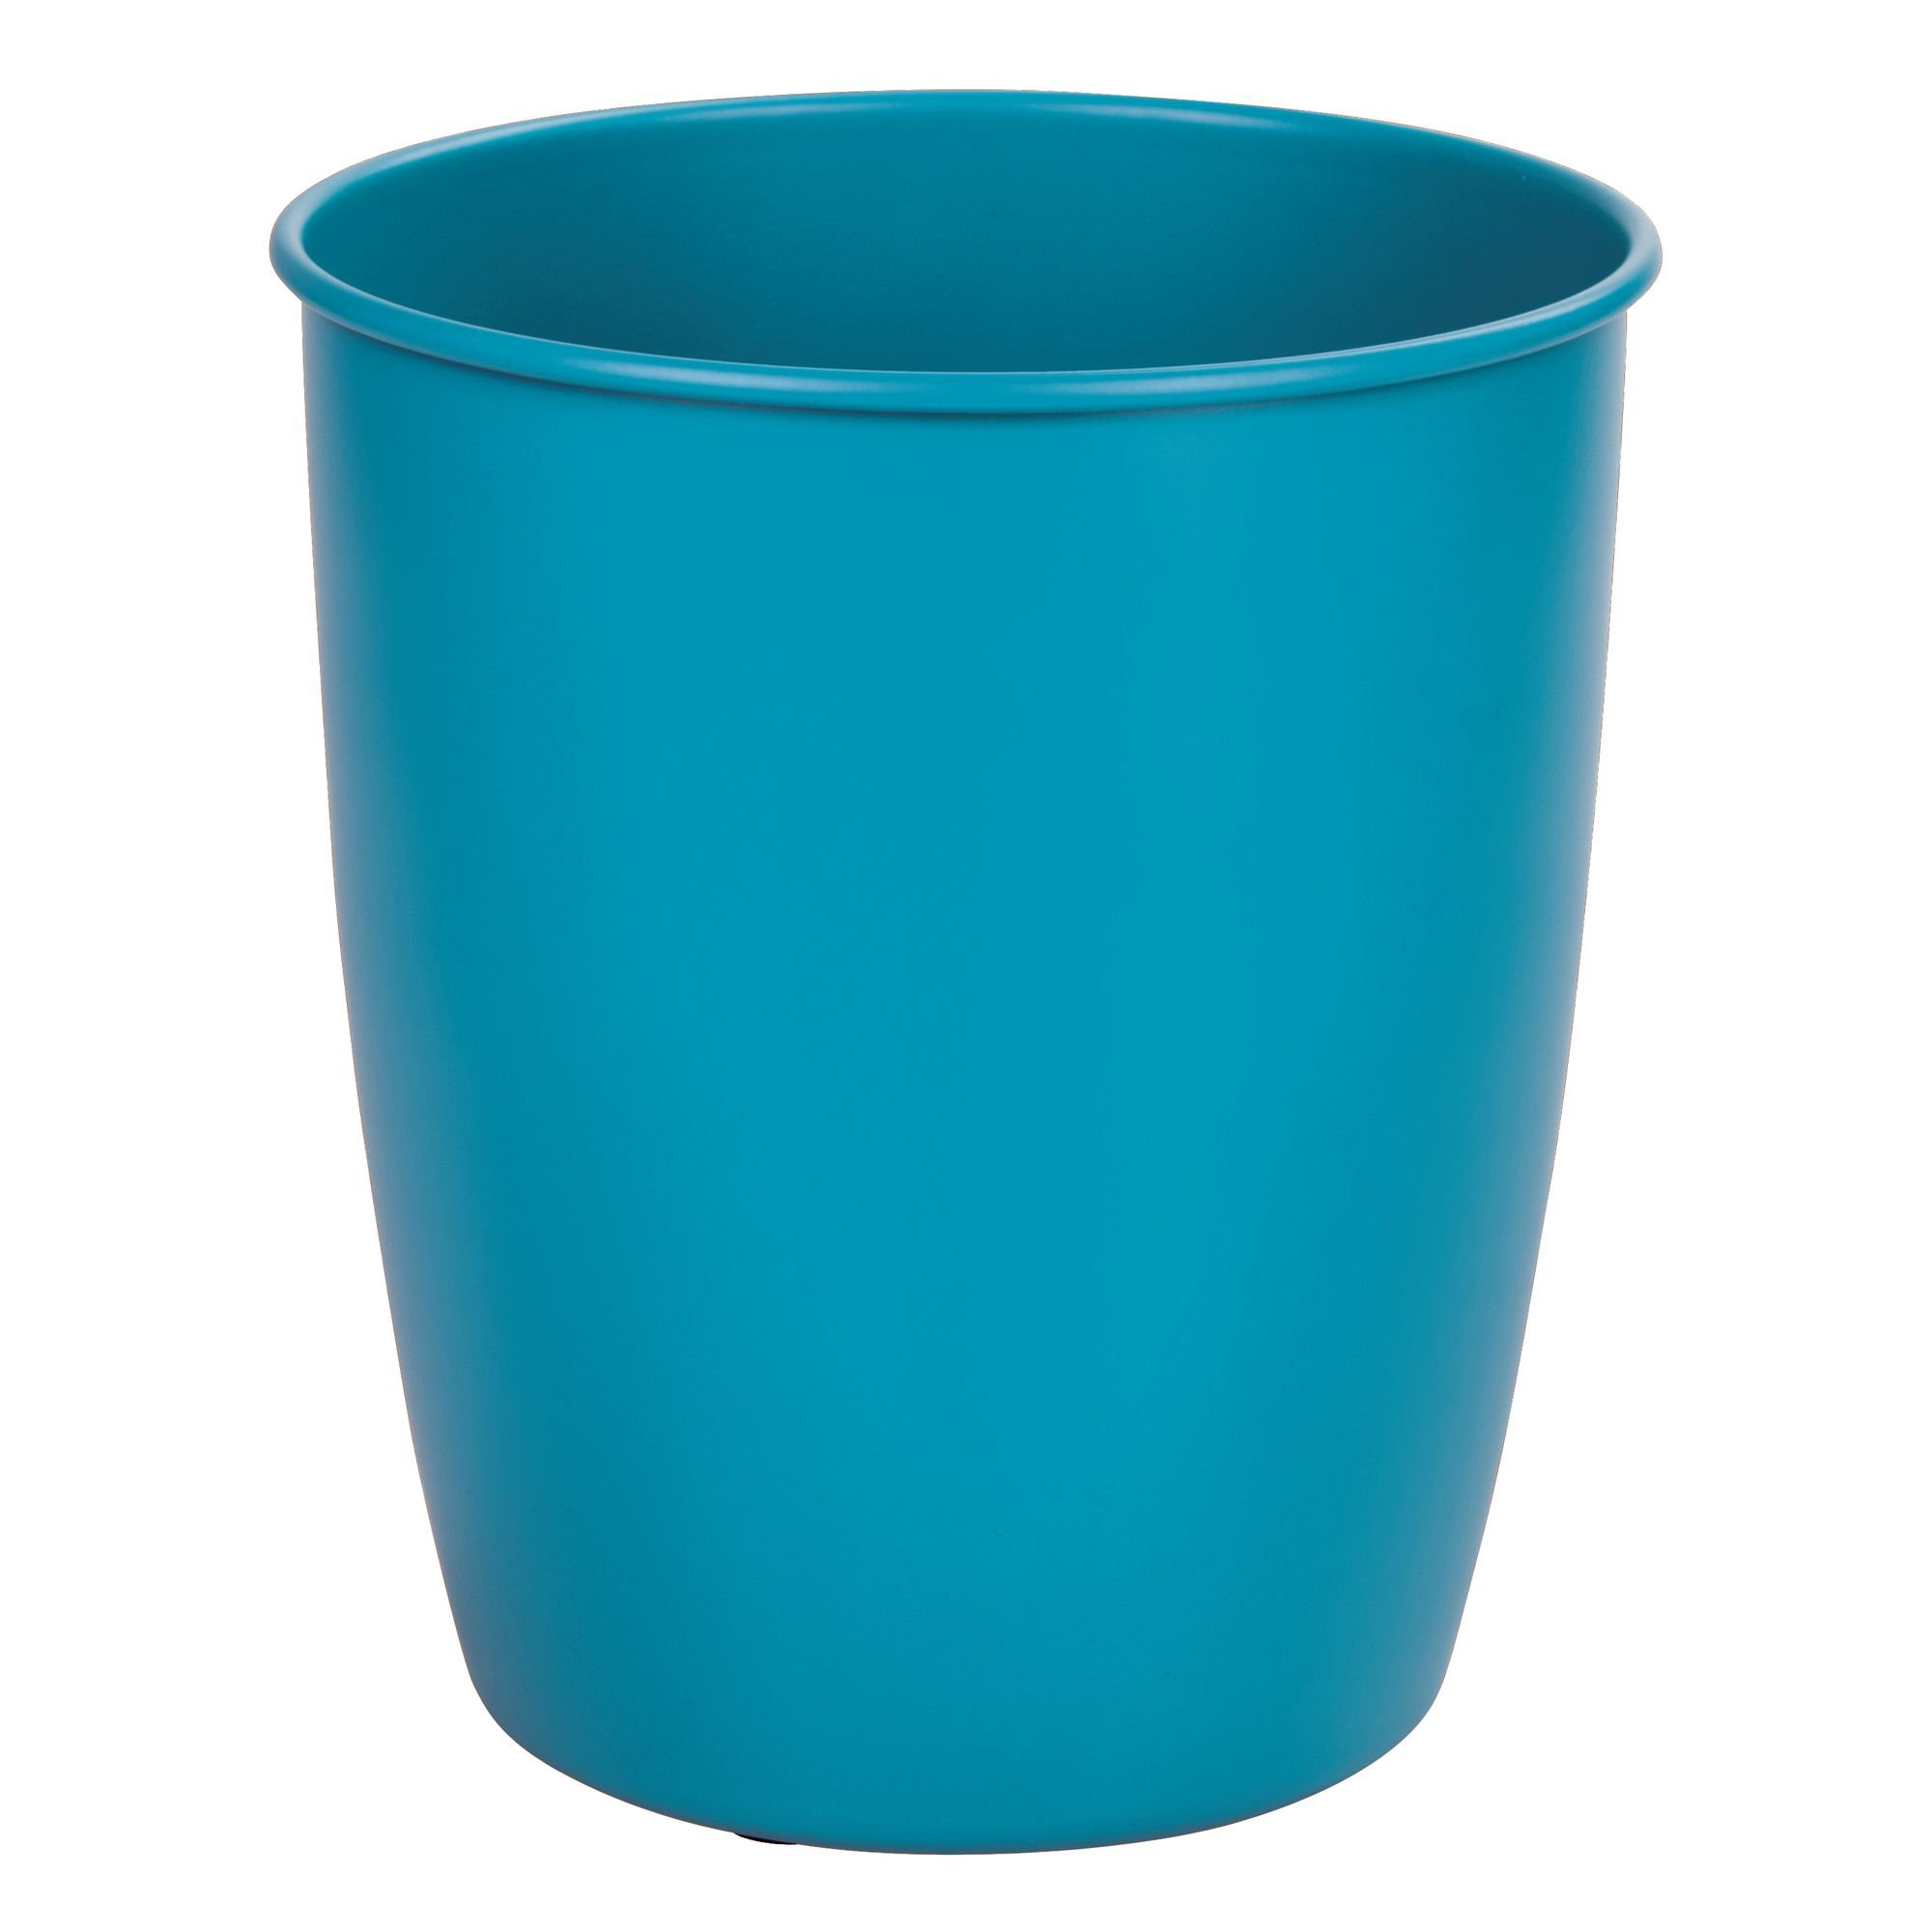 mDesign Round Metal Small Trash Can Wastebasket, Garbage Container Bin for Bathrooms, Powder Rooms, Kitchens, Home Offices - Durable Steel with Matte Teal Finish